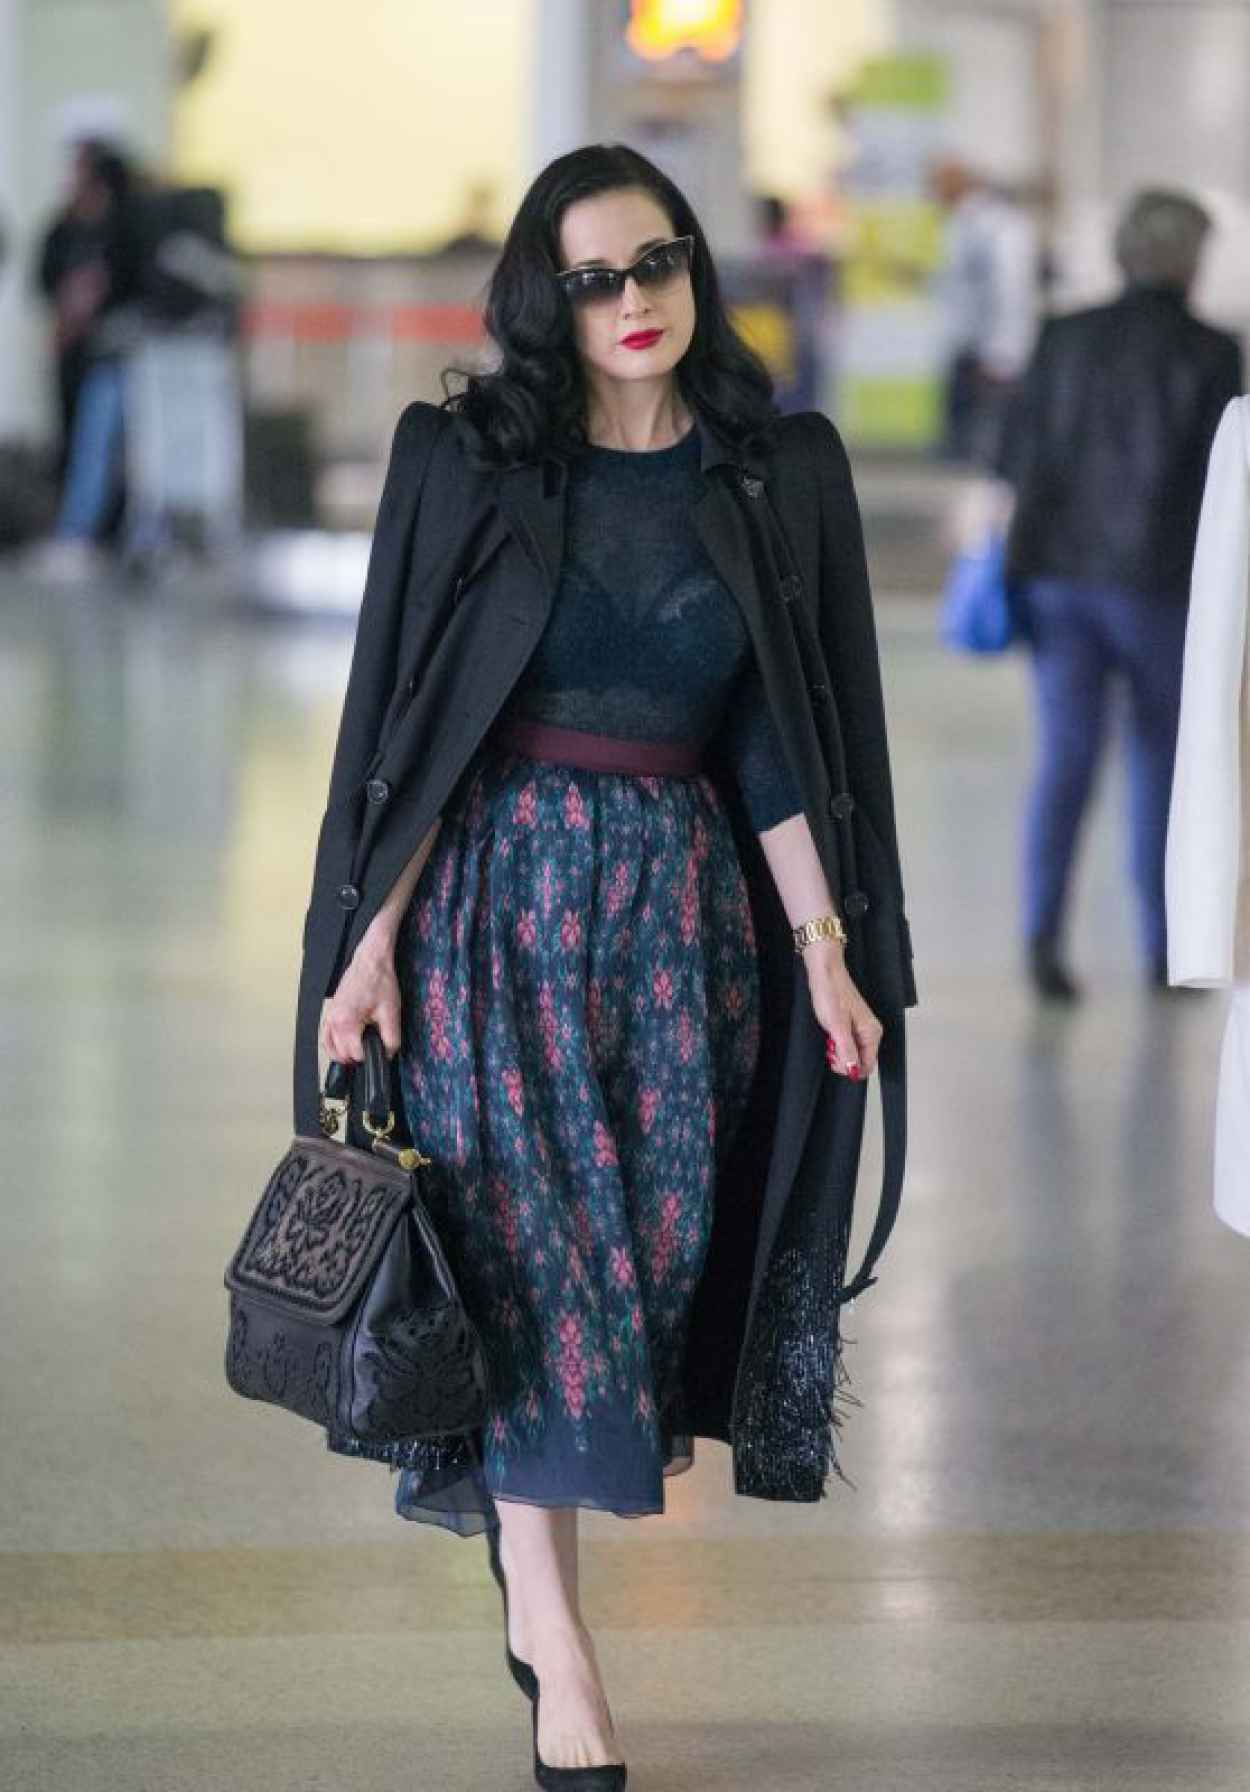 Dita Von Teese - Wearing Blue Top, Blue Skirt and a Large Black Coat - Melbourne Airport-1